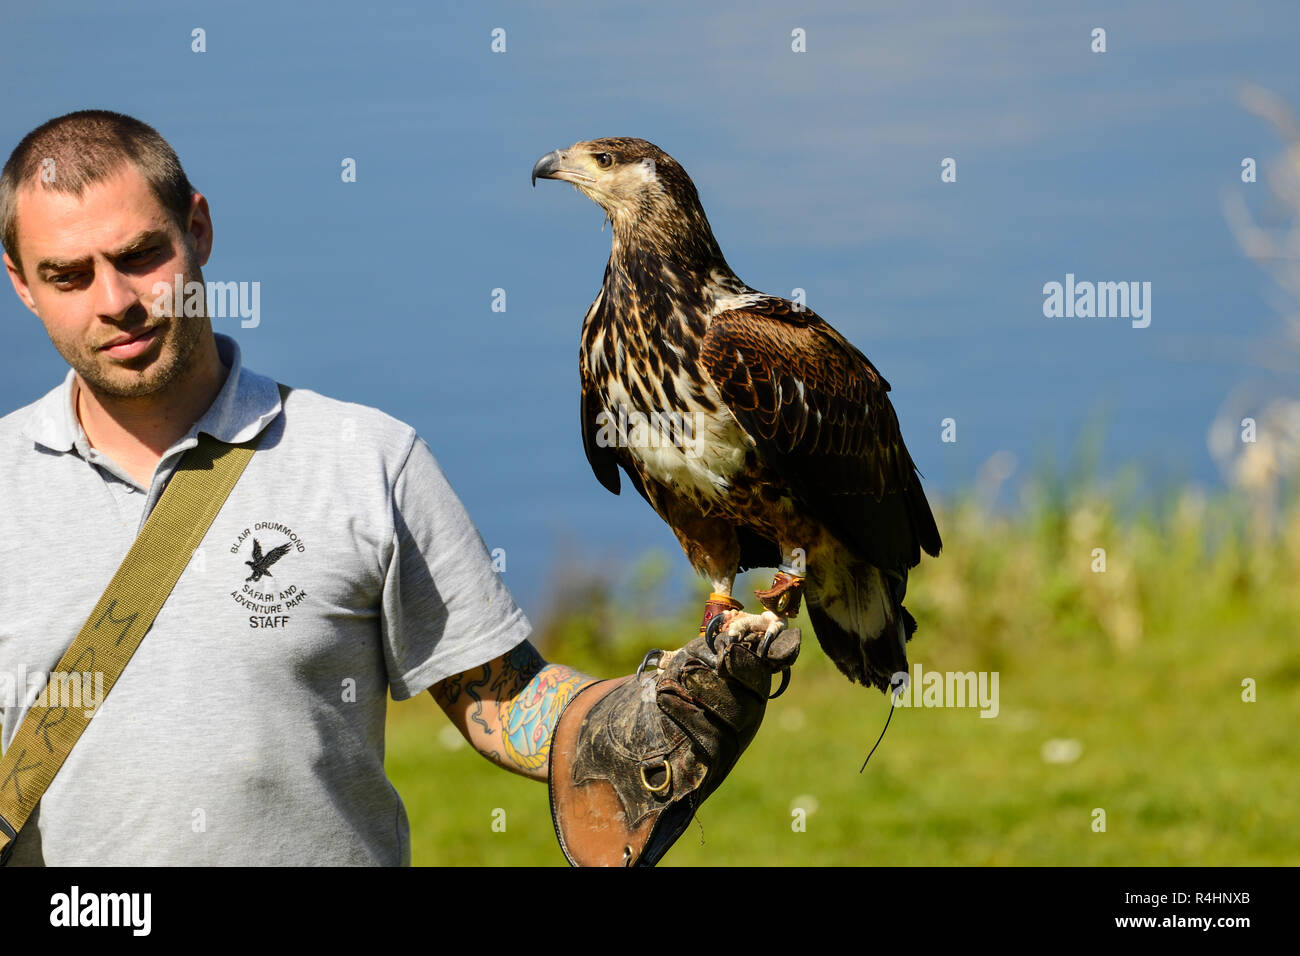 Red Tailed Hawk (Buteo jamaicensis) with handler at birds of prey flying display at Blair Drummond Safari Park, near Stirling, Scotland, UK - Stock Image